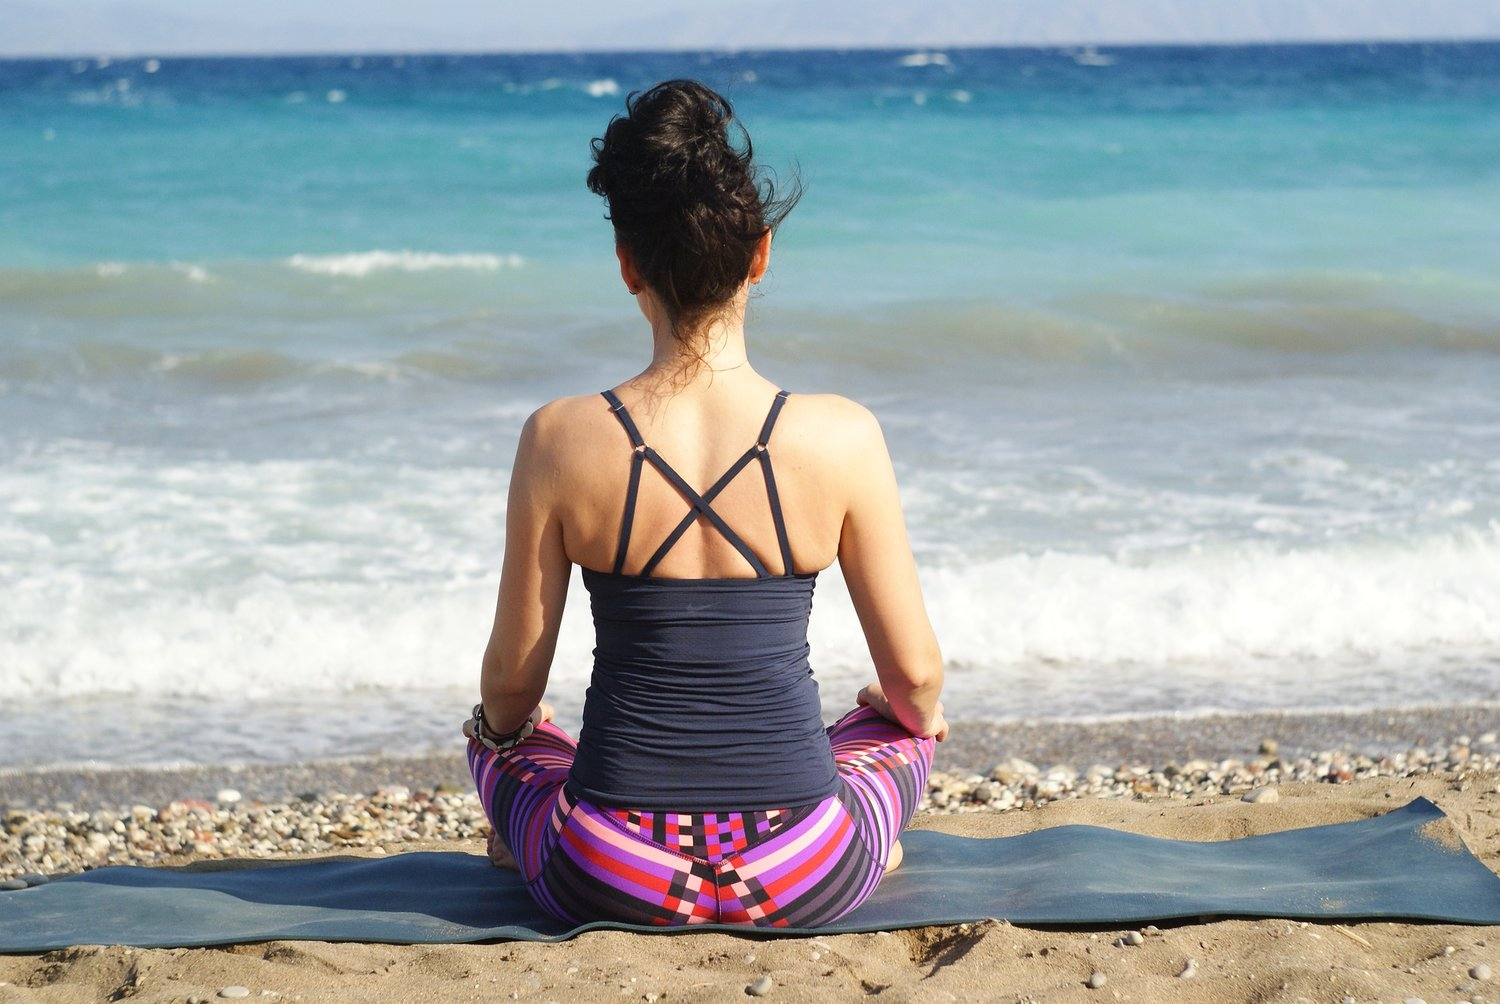 How can I increase my height by meditating? 4